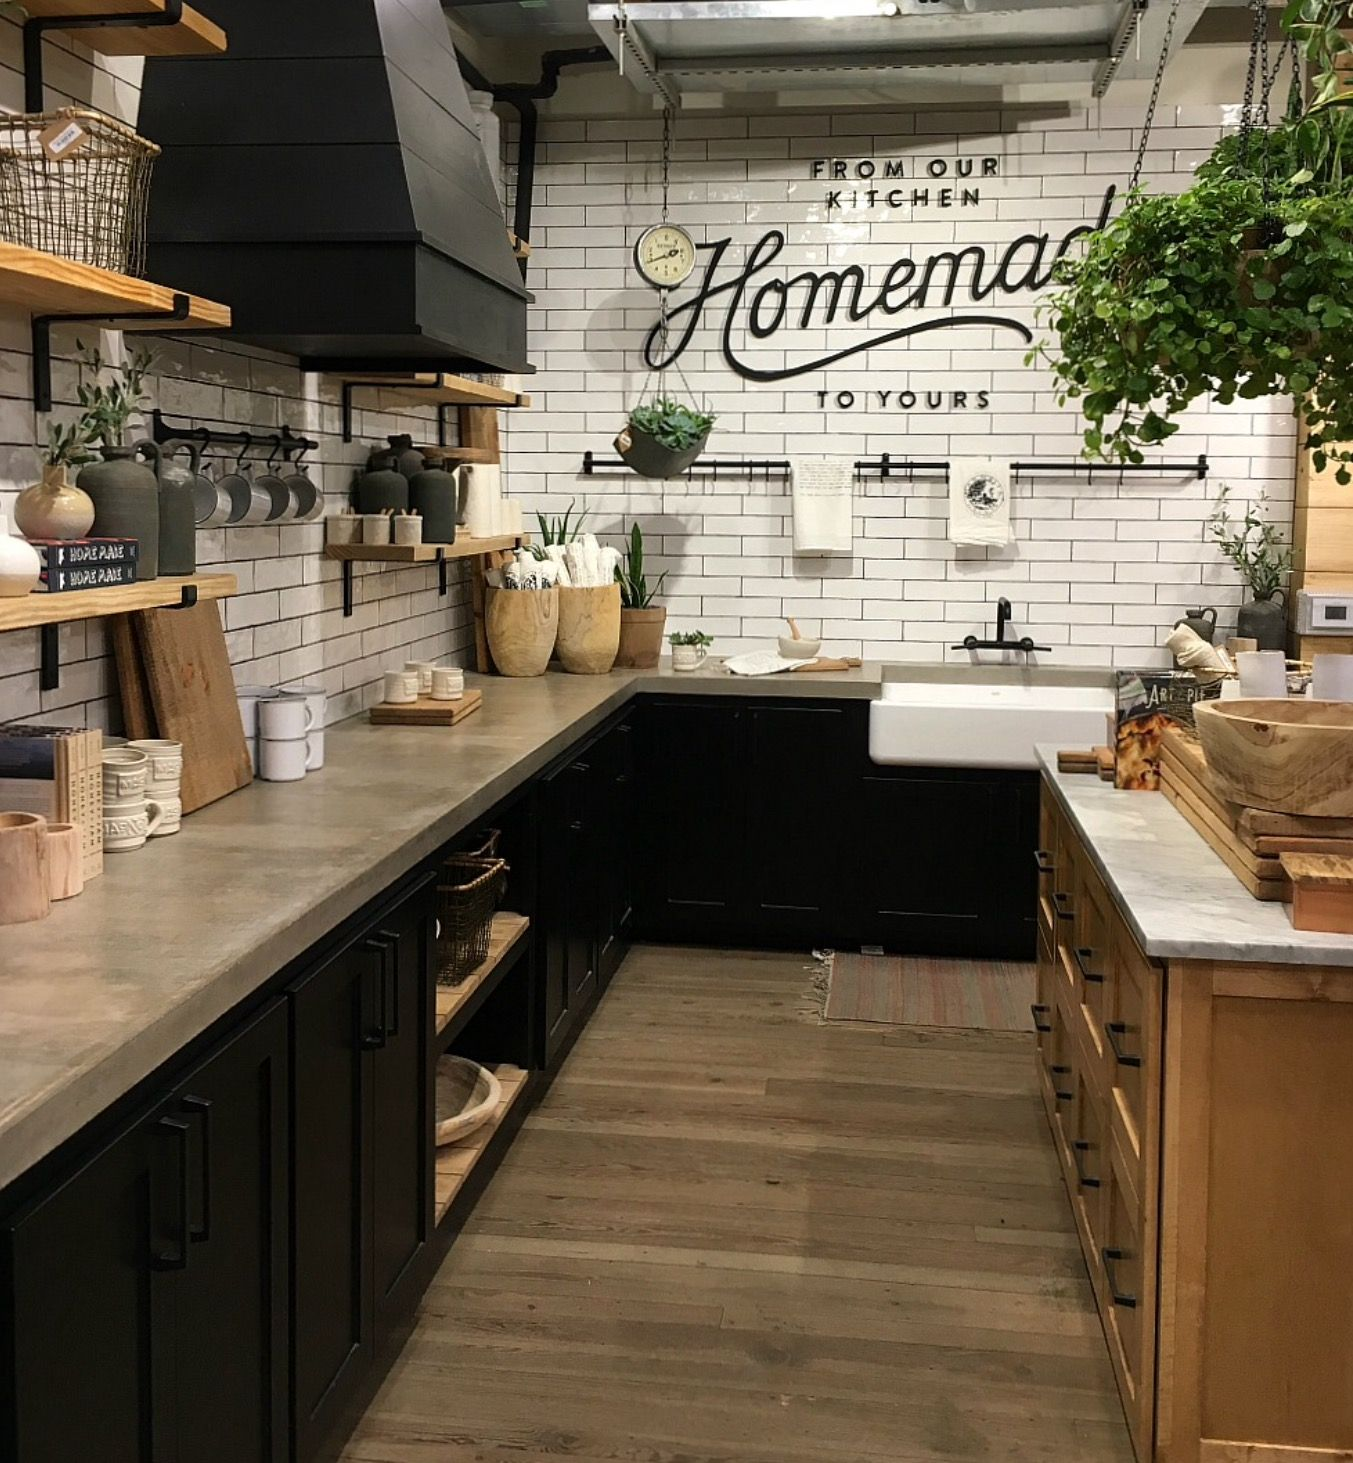 Dark Lower Cabinets With Concrete Counter Tile Walls And Open Shelving Up Top Farmhouse Kitchen Design Kitchen Inspirations Farmhouse Kitchen Cabinets